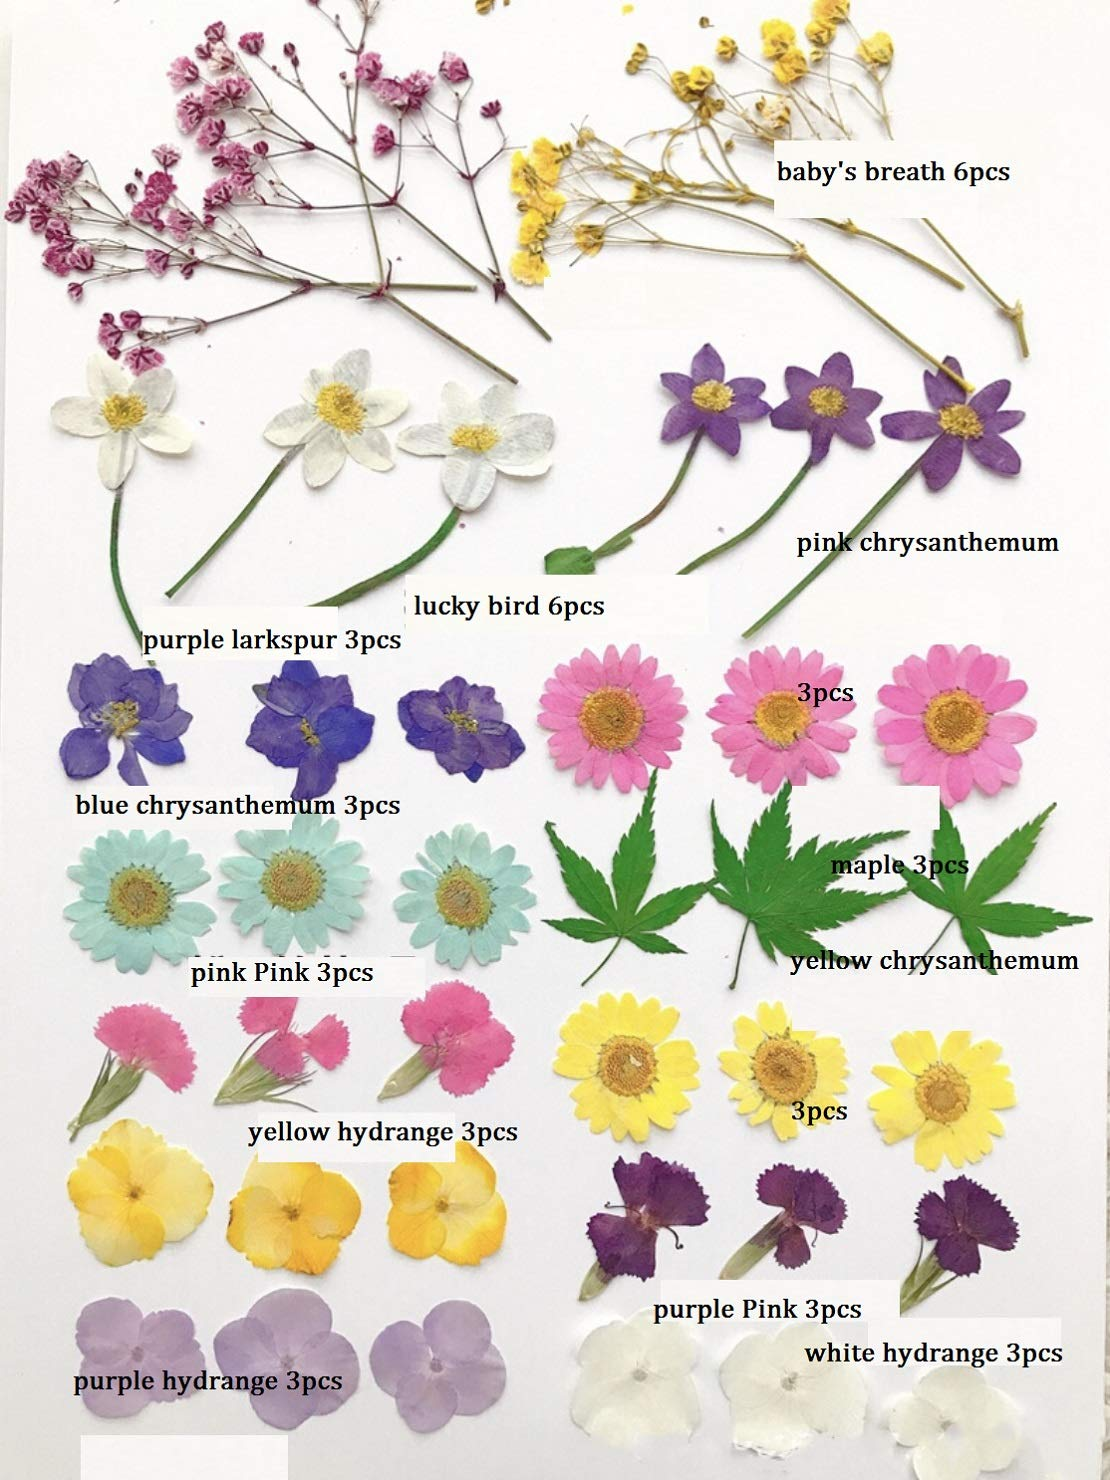 35PCS CheeseandU Real Dried Pressed Flowers Cherry Queen Annes Lace Maple Mixed Multiple Natural Pressed Flowers For Art Craft DIY Resin Larkspur Little Narcissus Chrysanthemum